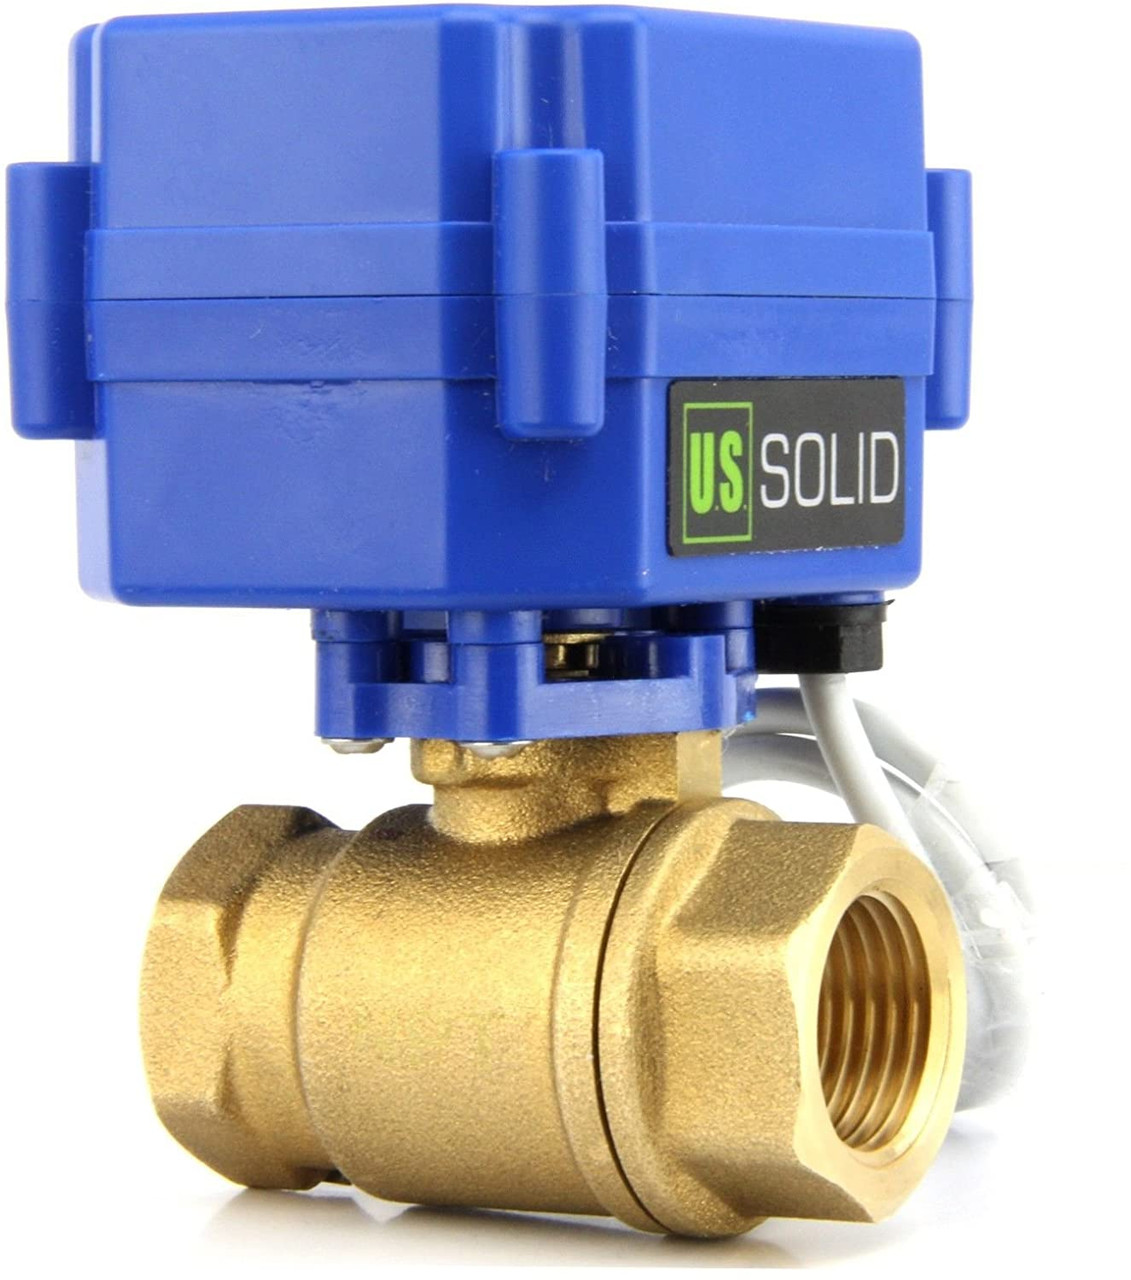 """U.S. Solid Motorized Ball Valve- 1/2"""" Brass Electrical Ball Valve with Full Port, 85-265 V AC, 2 Wire Auto Return"""